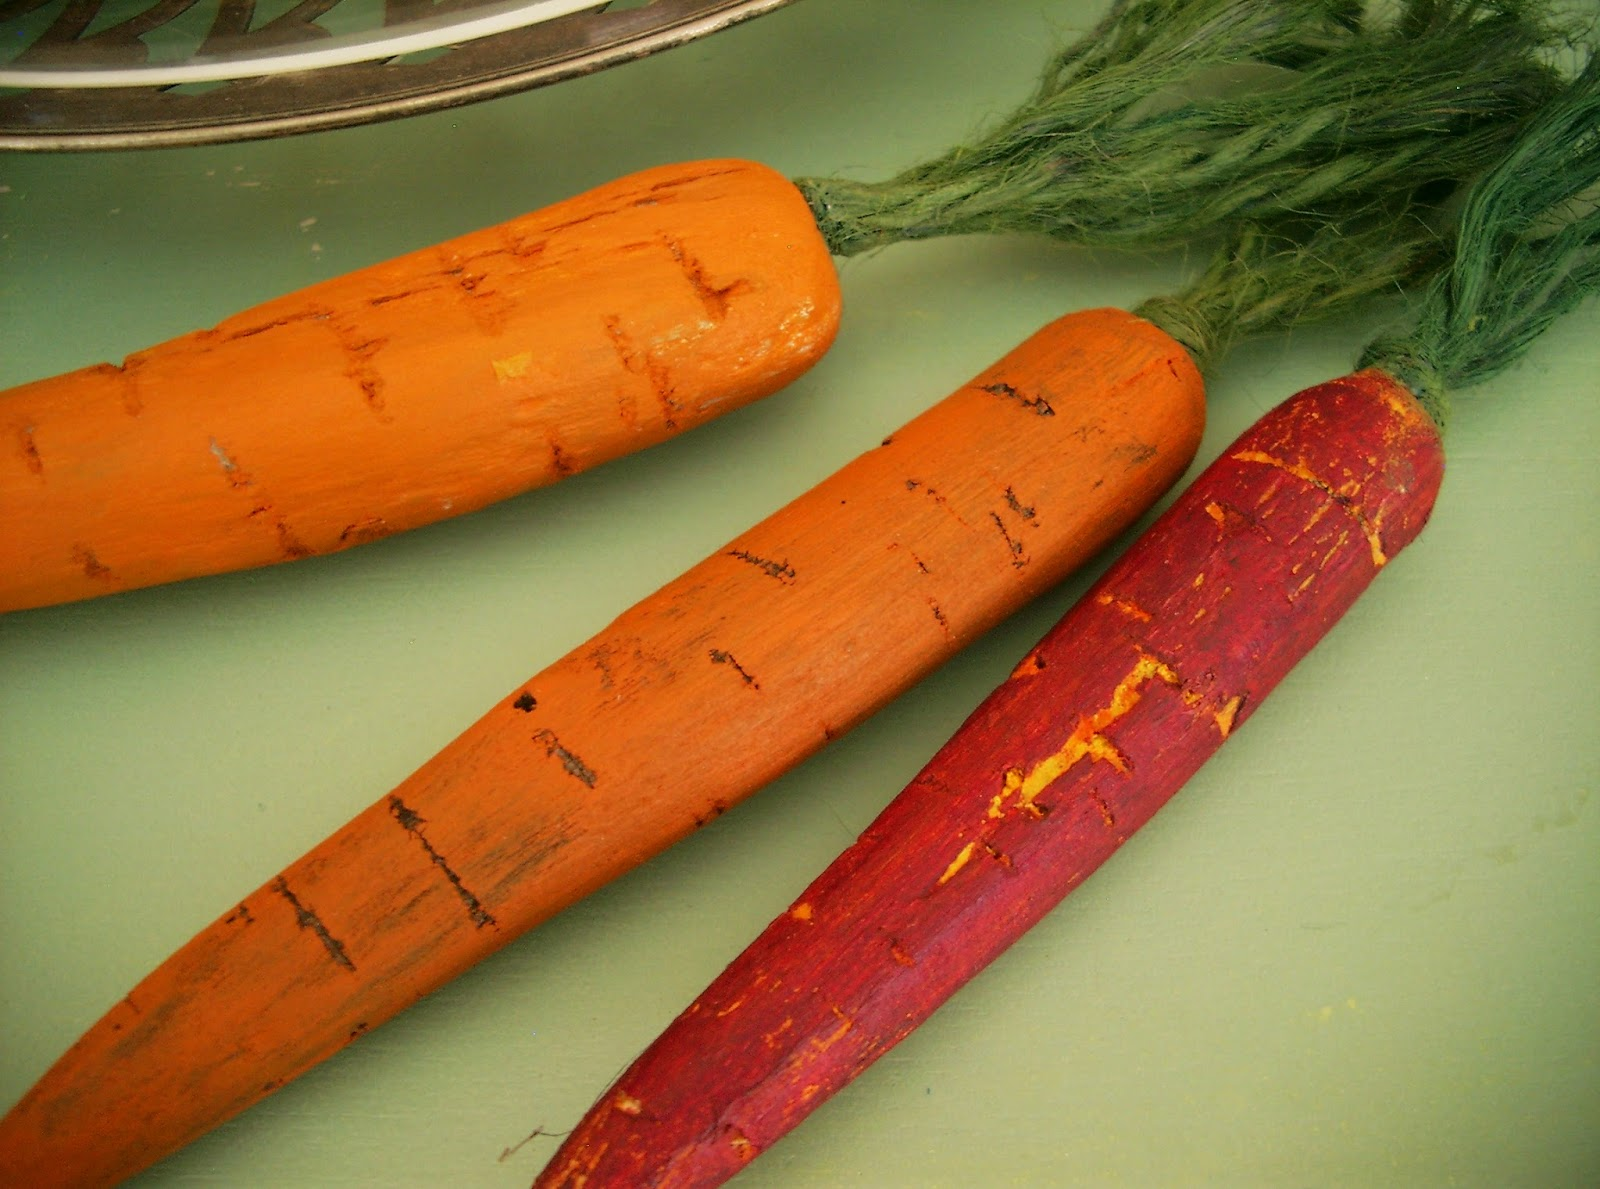 At The Createaerie Let S Make Real Carrot Sticks